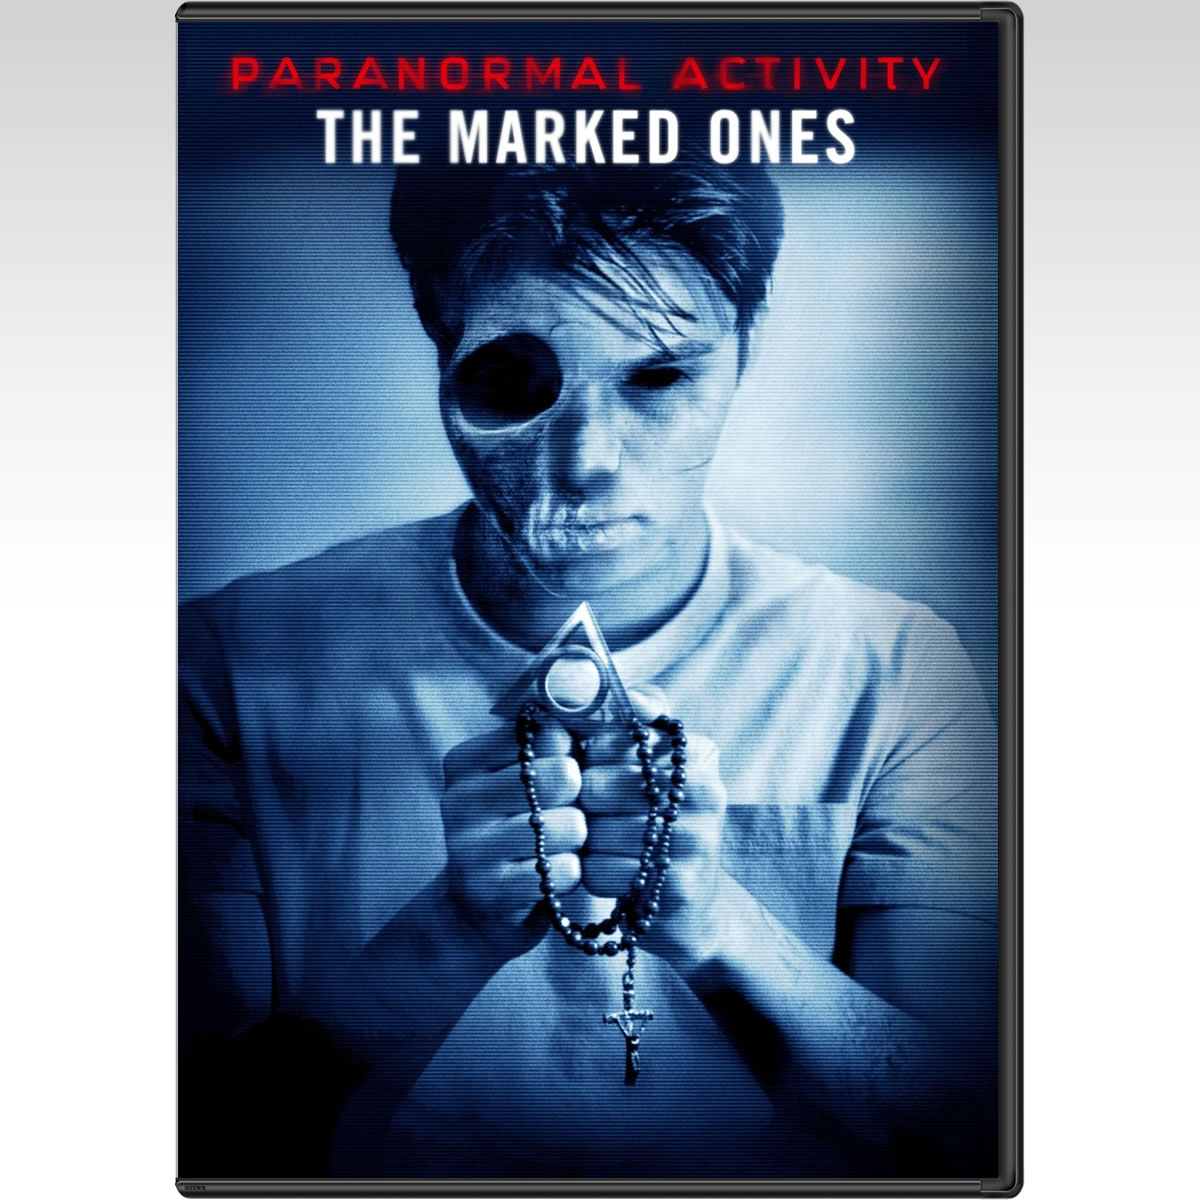 PARANORMAL ACTIVITY 5: THE MARKED ONES - ΜΕΤΑΦΥΣΙΚΗ ΔΡΑΣΤΗΡΙΟΤΗΤΑ 5: ΟΙ ΣΤΙΓΜΑΤΙΣΜΕΝΟΙ (DVD)